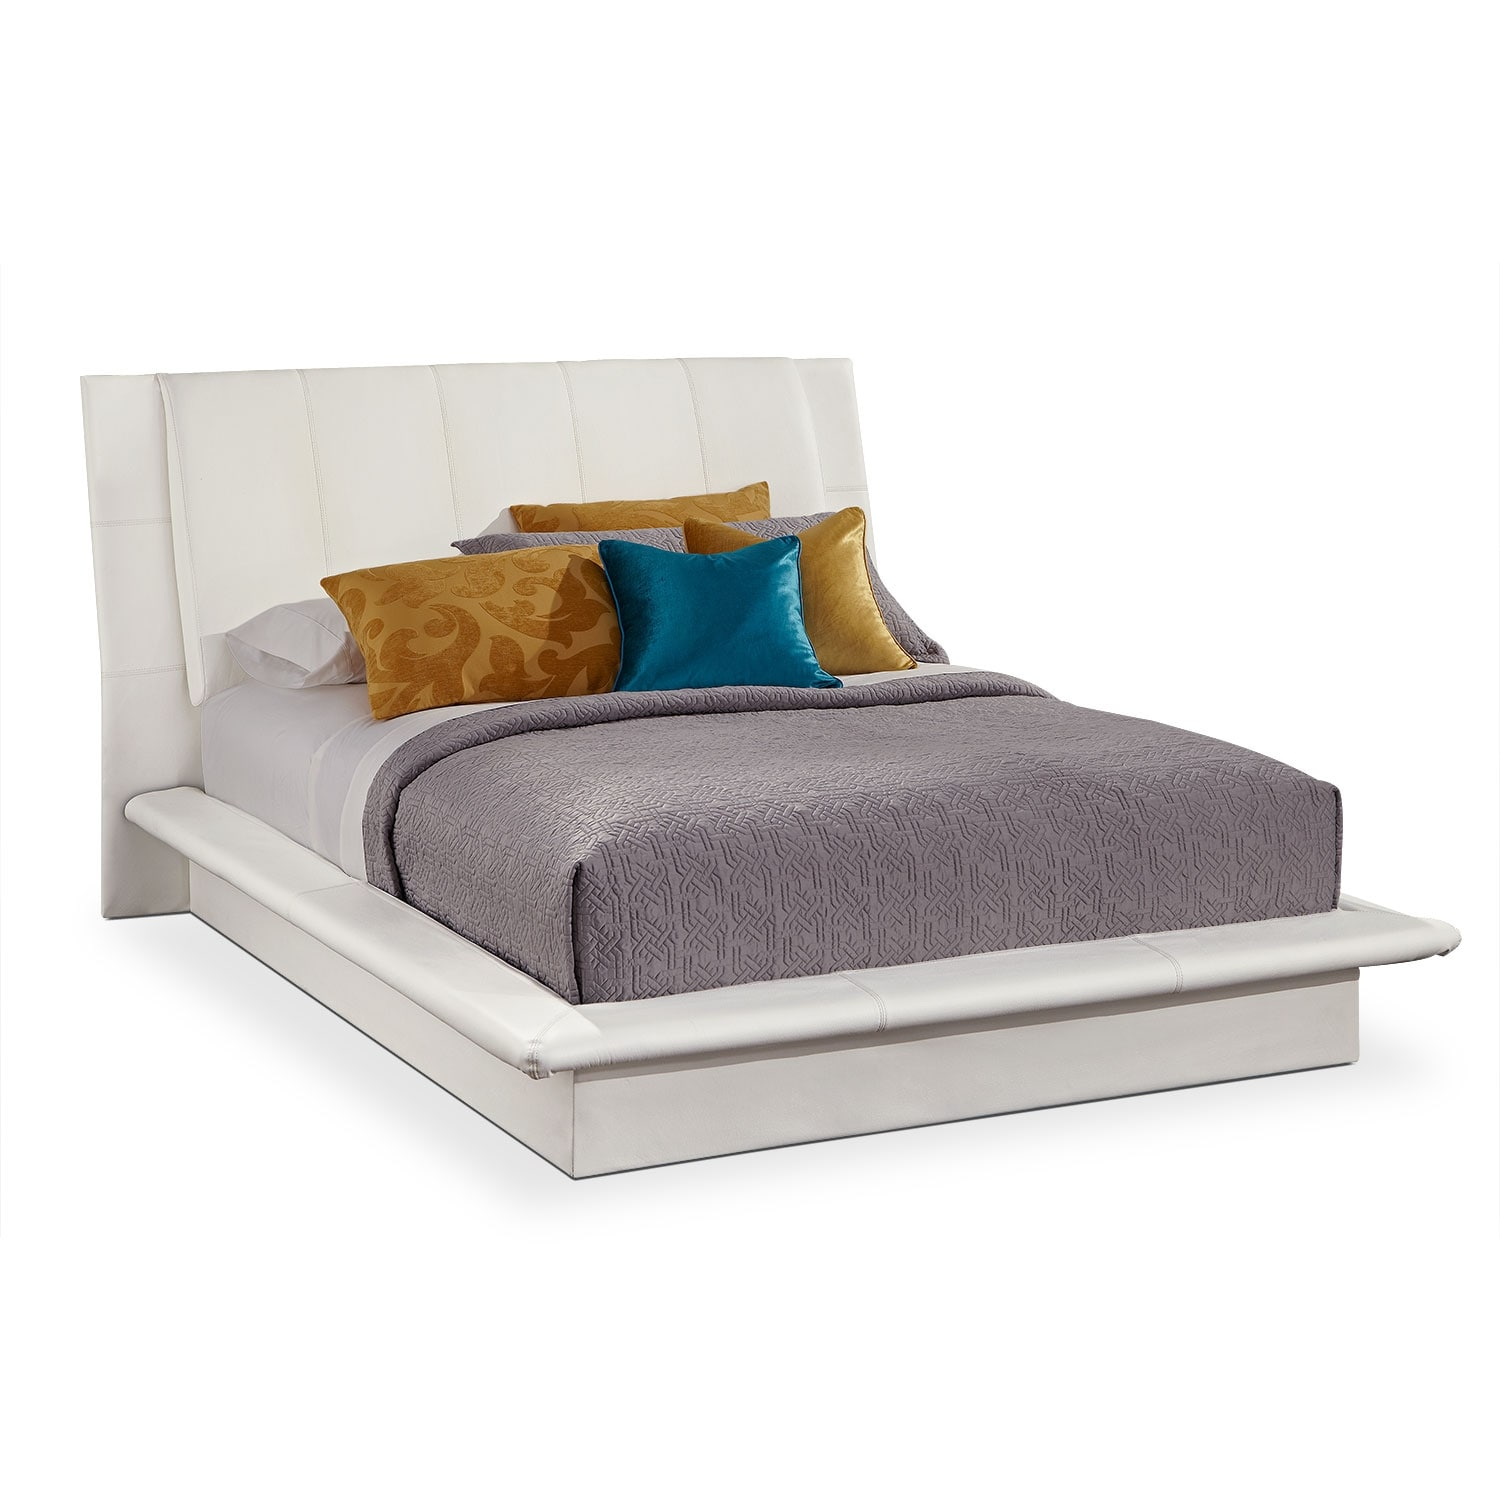 Dimora queen upholstered bed white value city furniture for Bedroom furniture upholstered beds